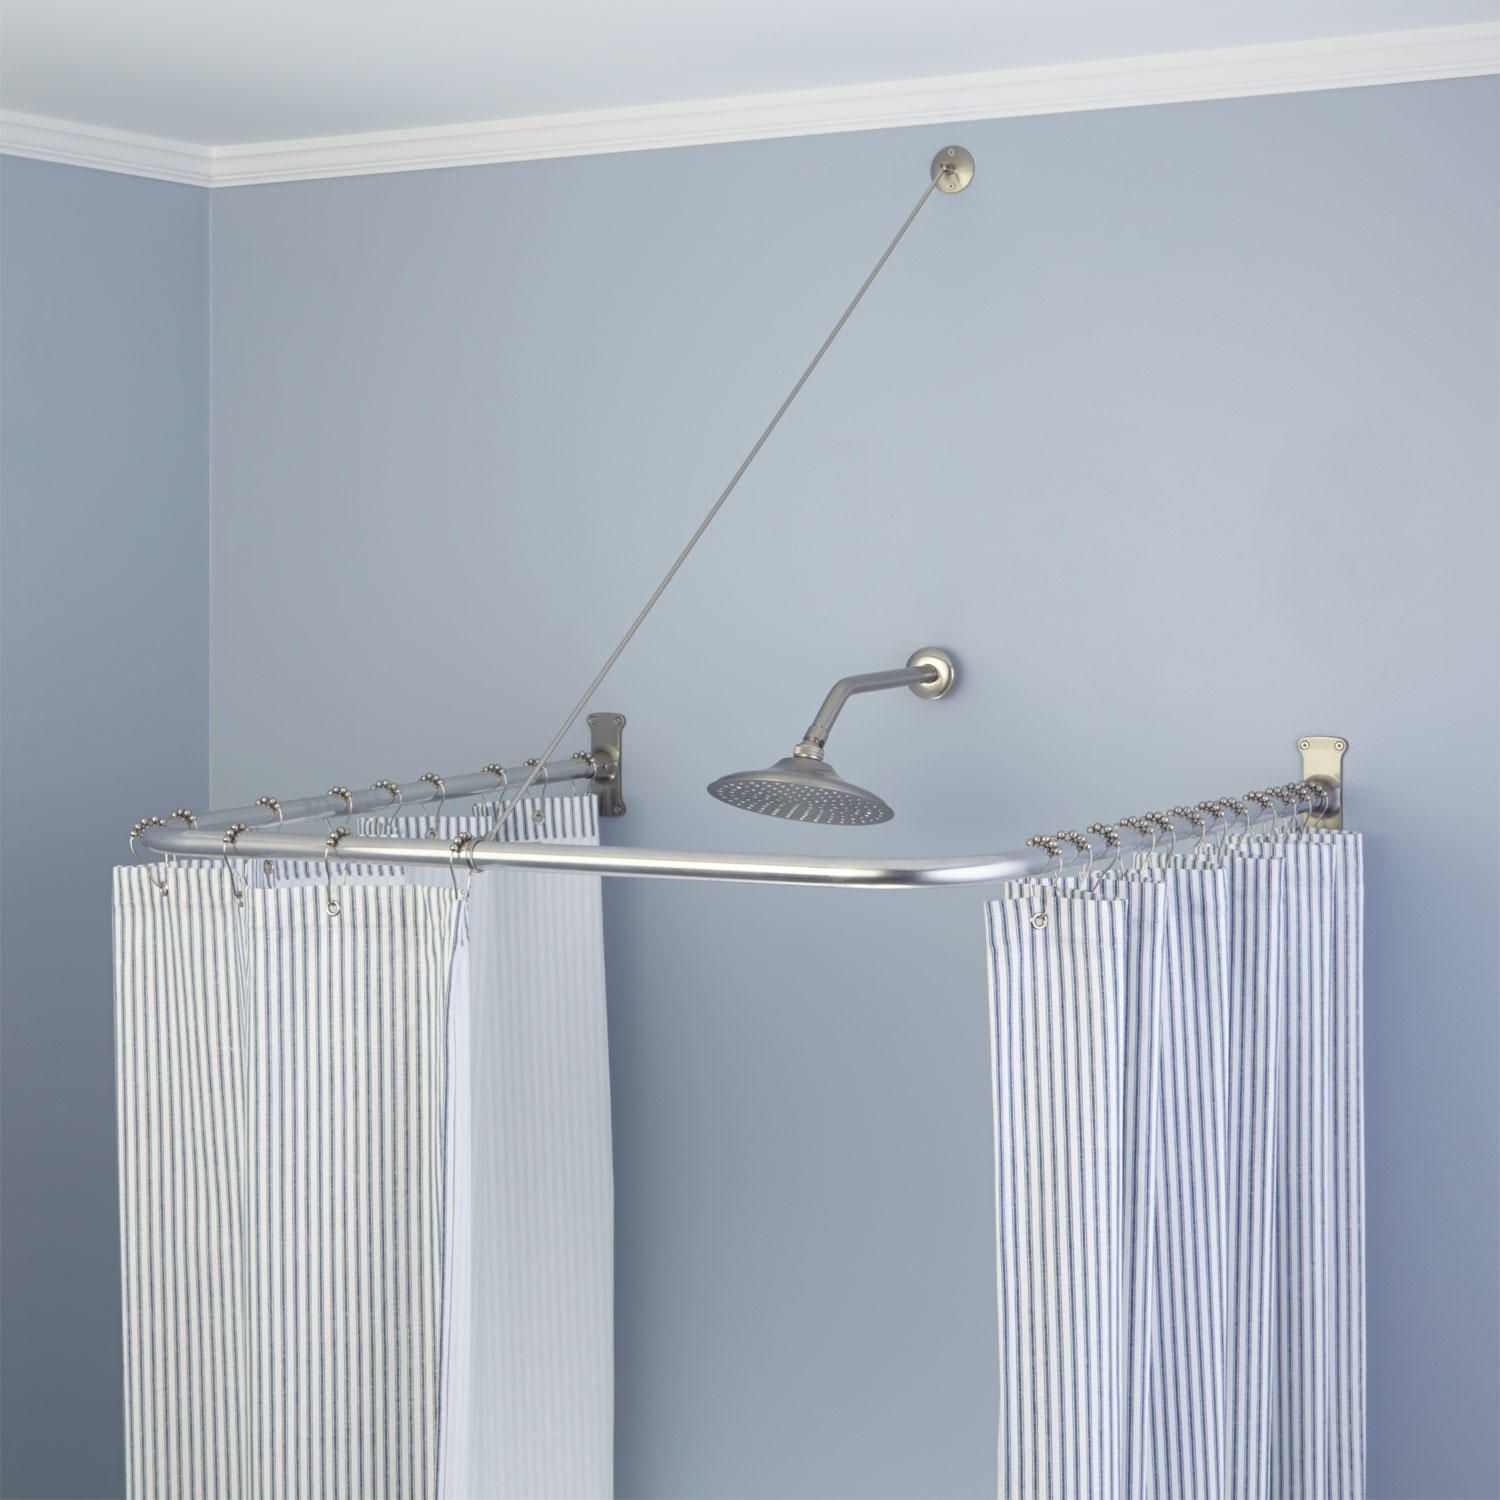 U Shaped Shower Curtain Rod With Support